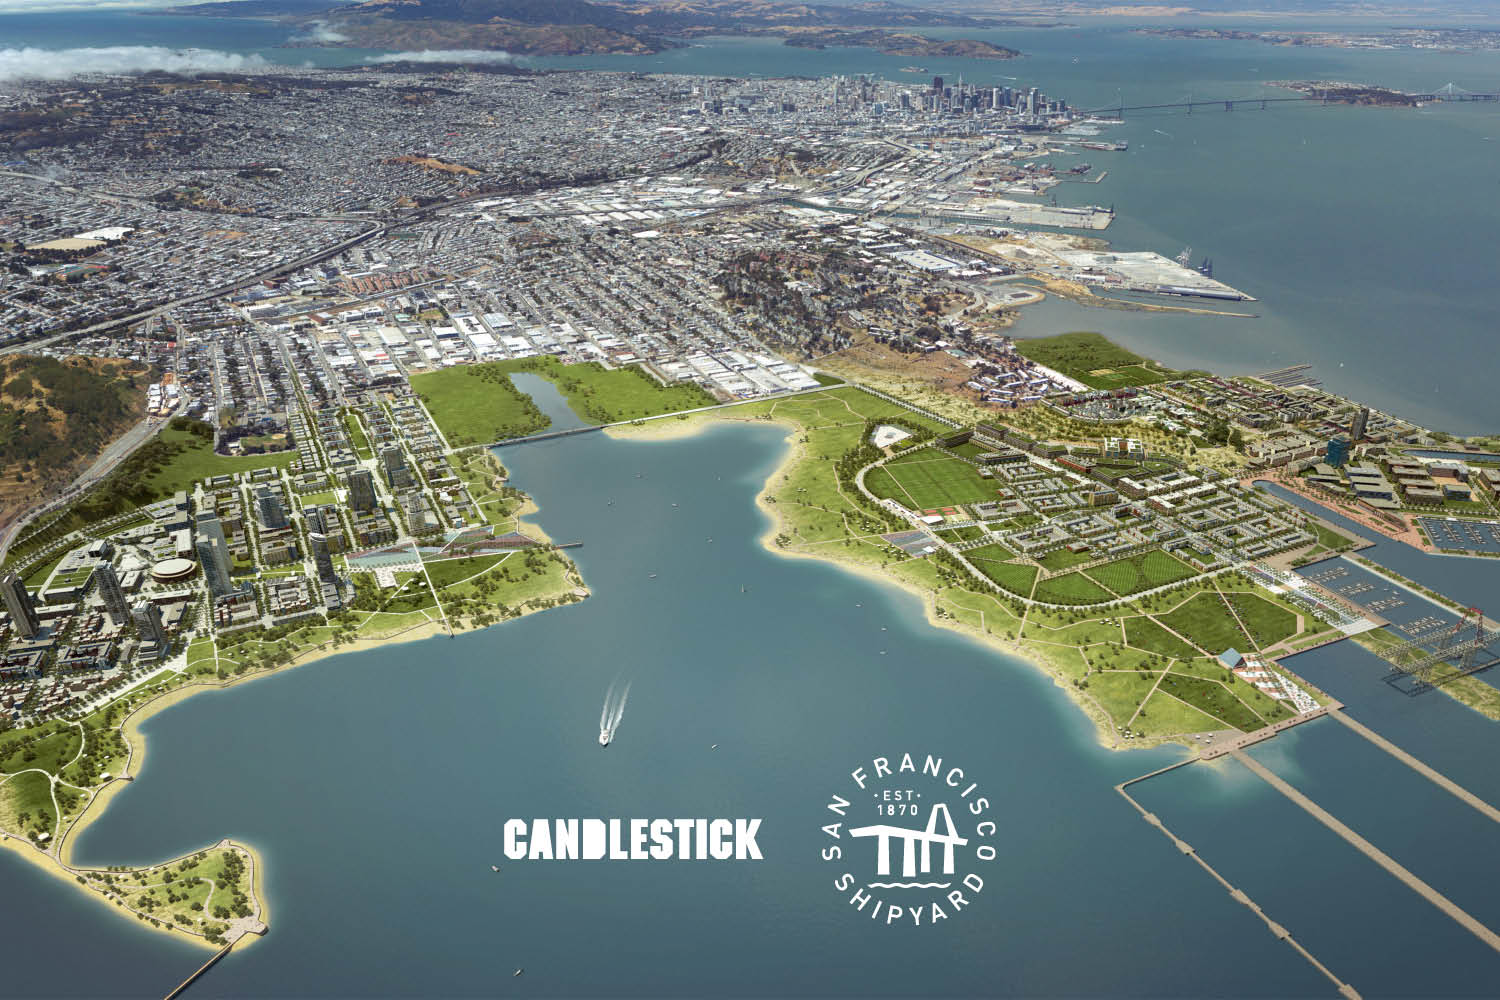 Property Branding for Shipyard and Candlestick - Strategy 4